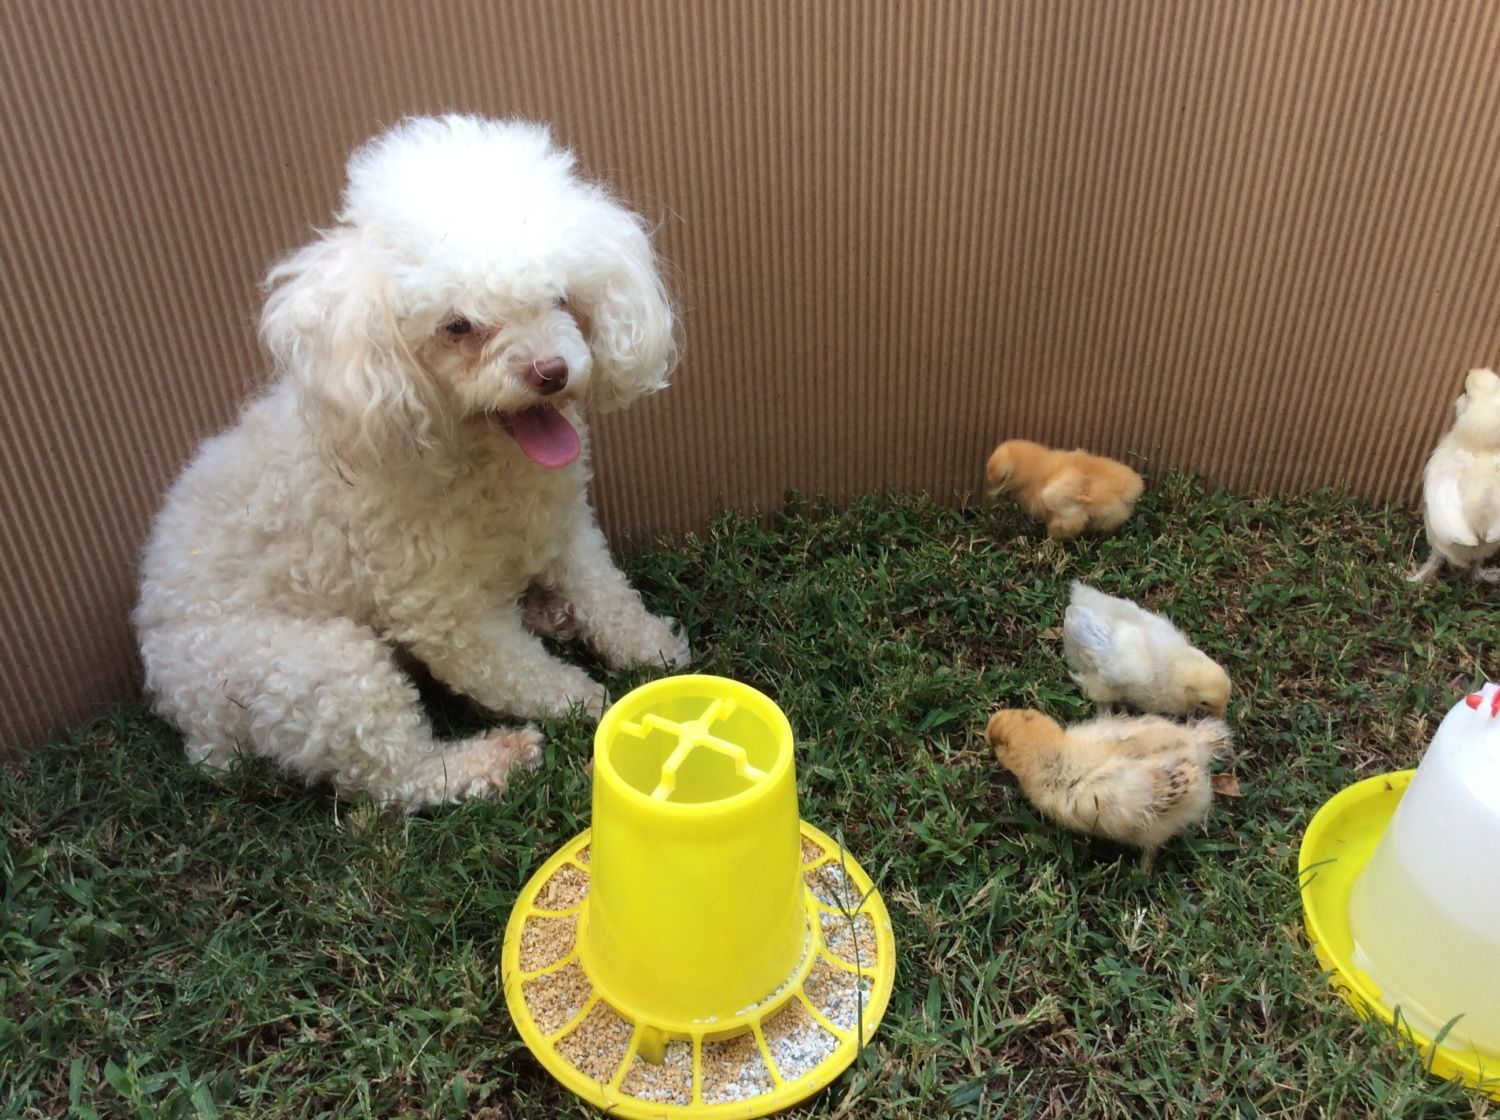 Gracie the poodle was born deaf and she loves the baby chicks.